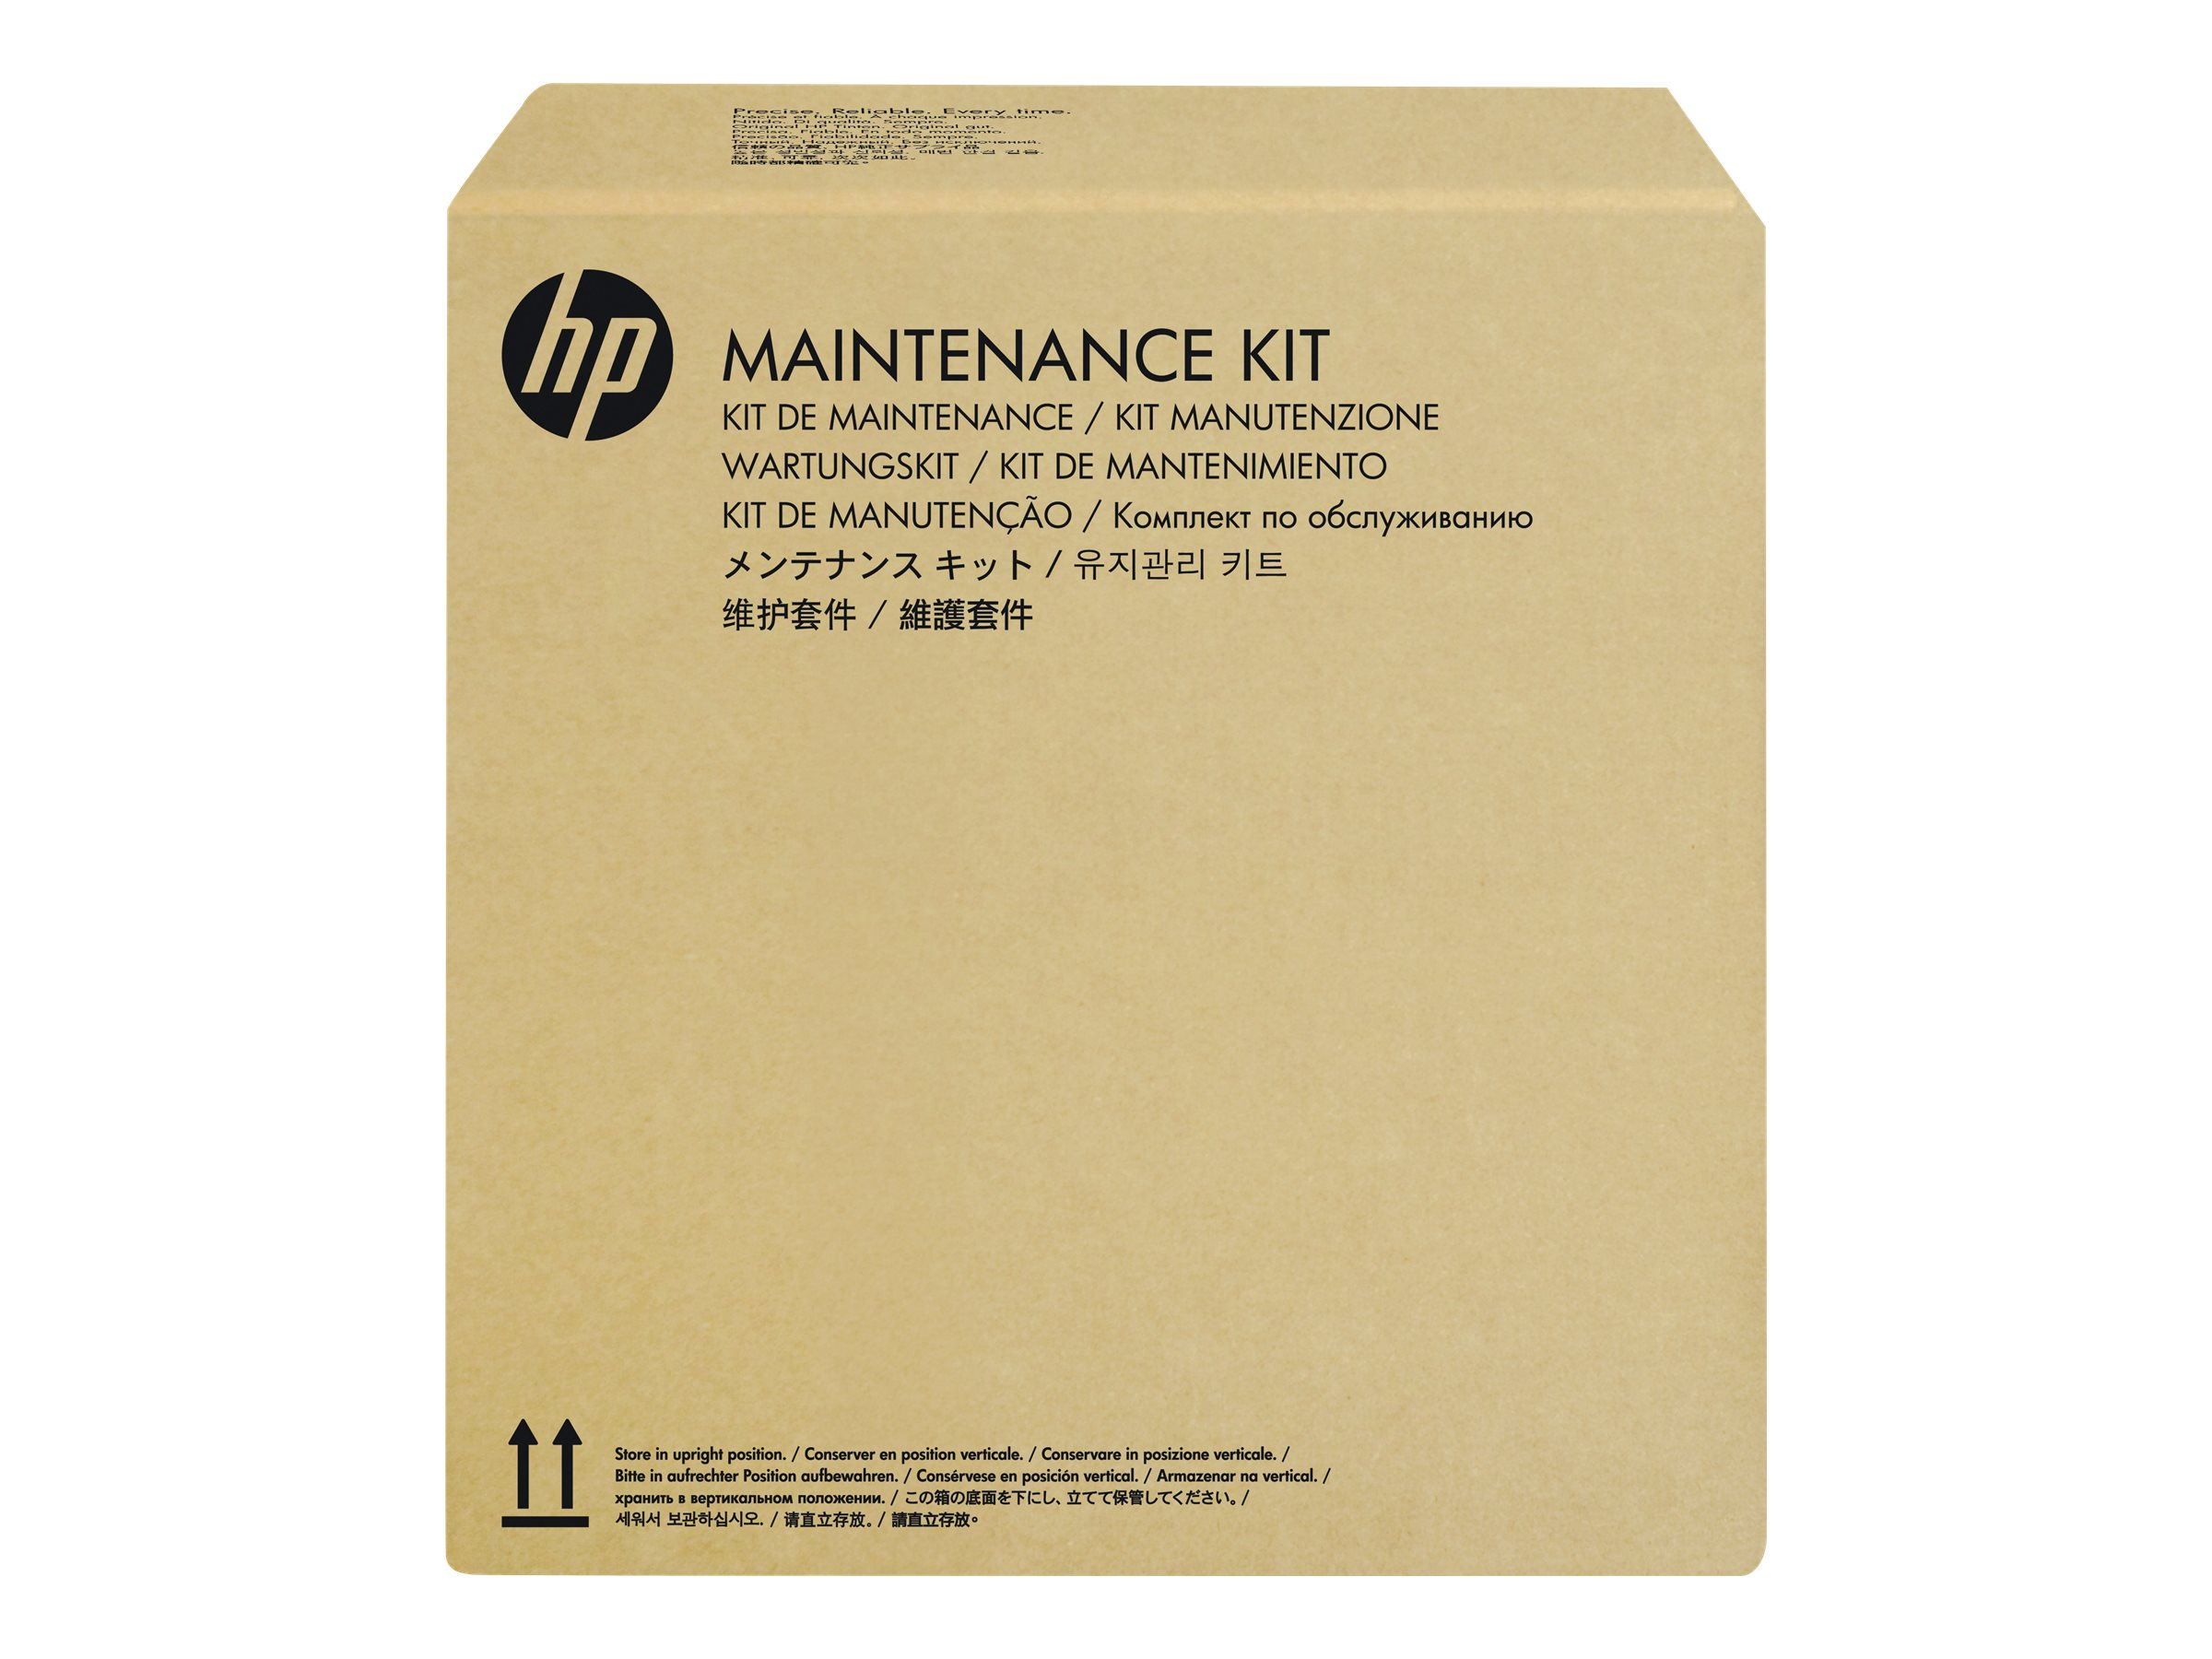 HP Scanjet Roller Replacement Kit - maintenance kit